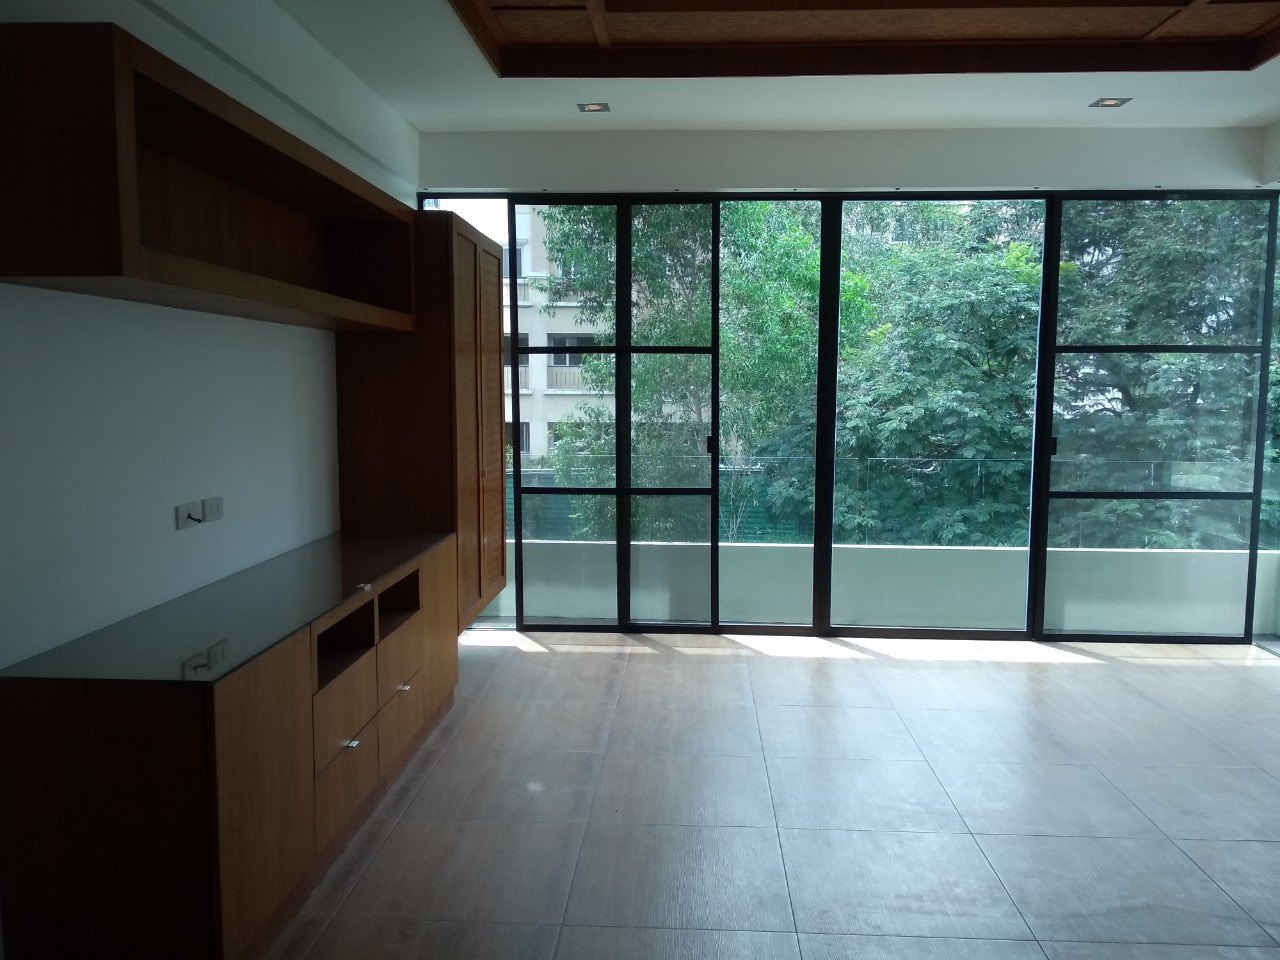 5 Bedrooms House For Rent, McKinley Hill Village 9